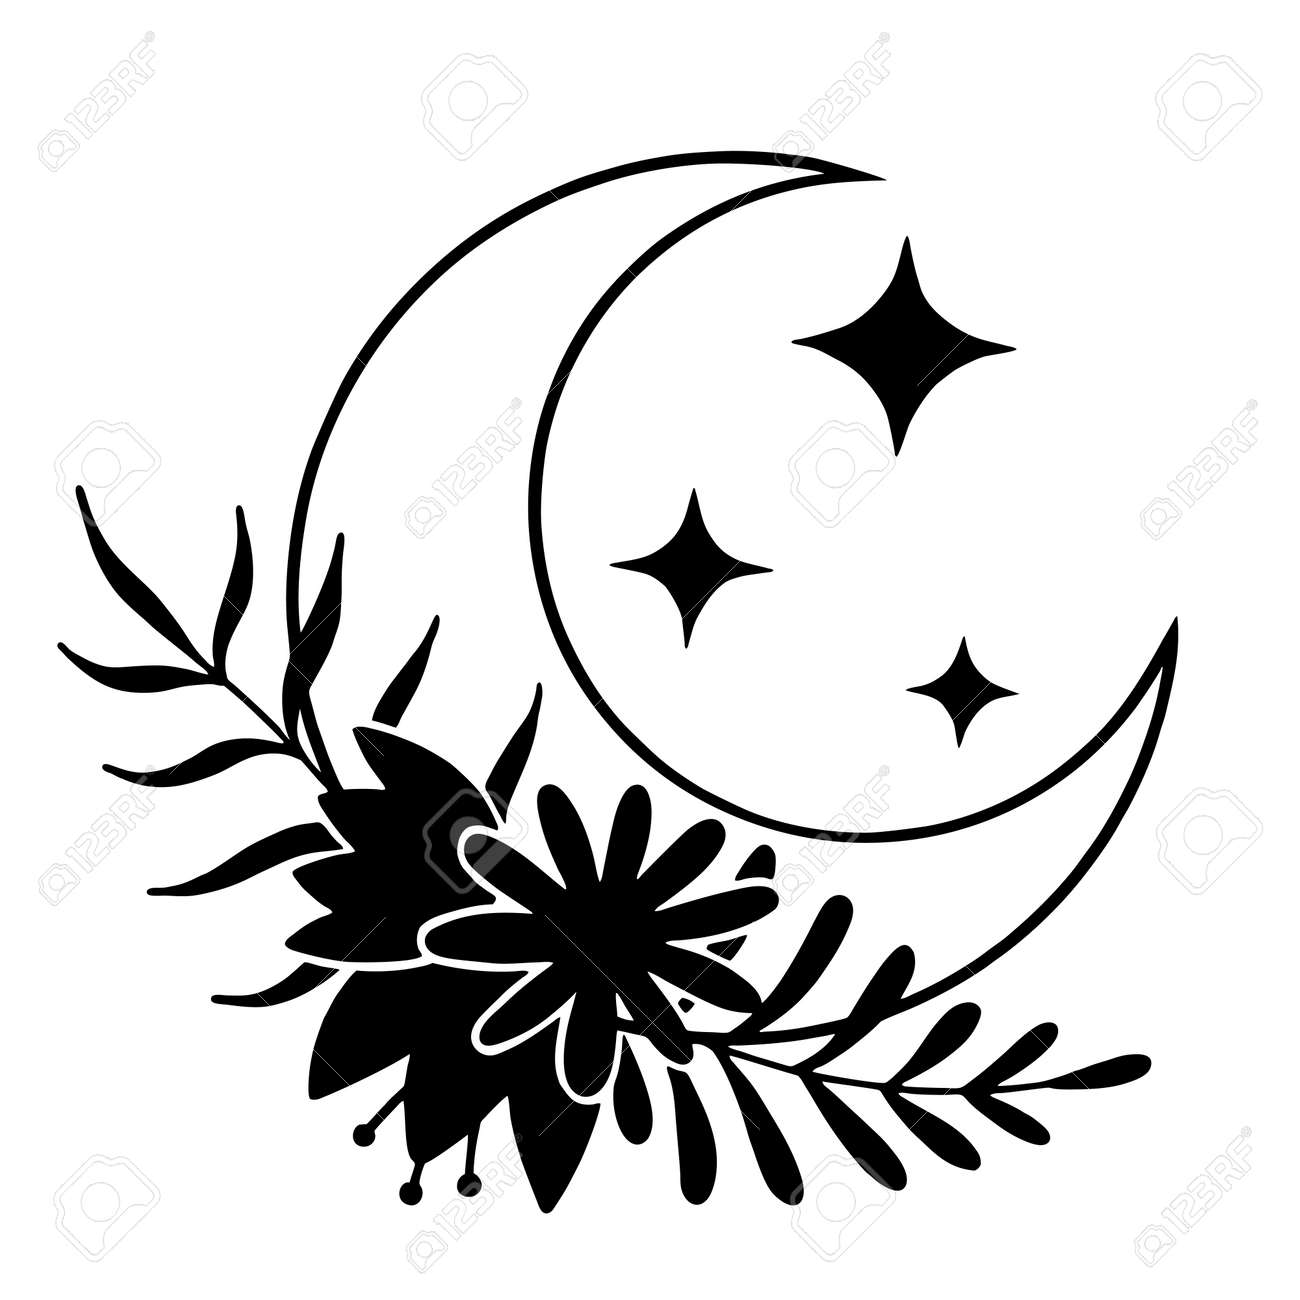 Magic moon with stars and flowers on white background. - 170193124